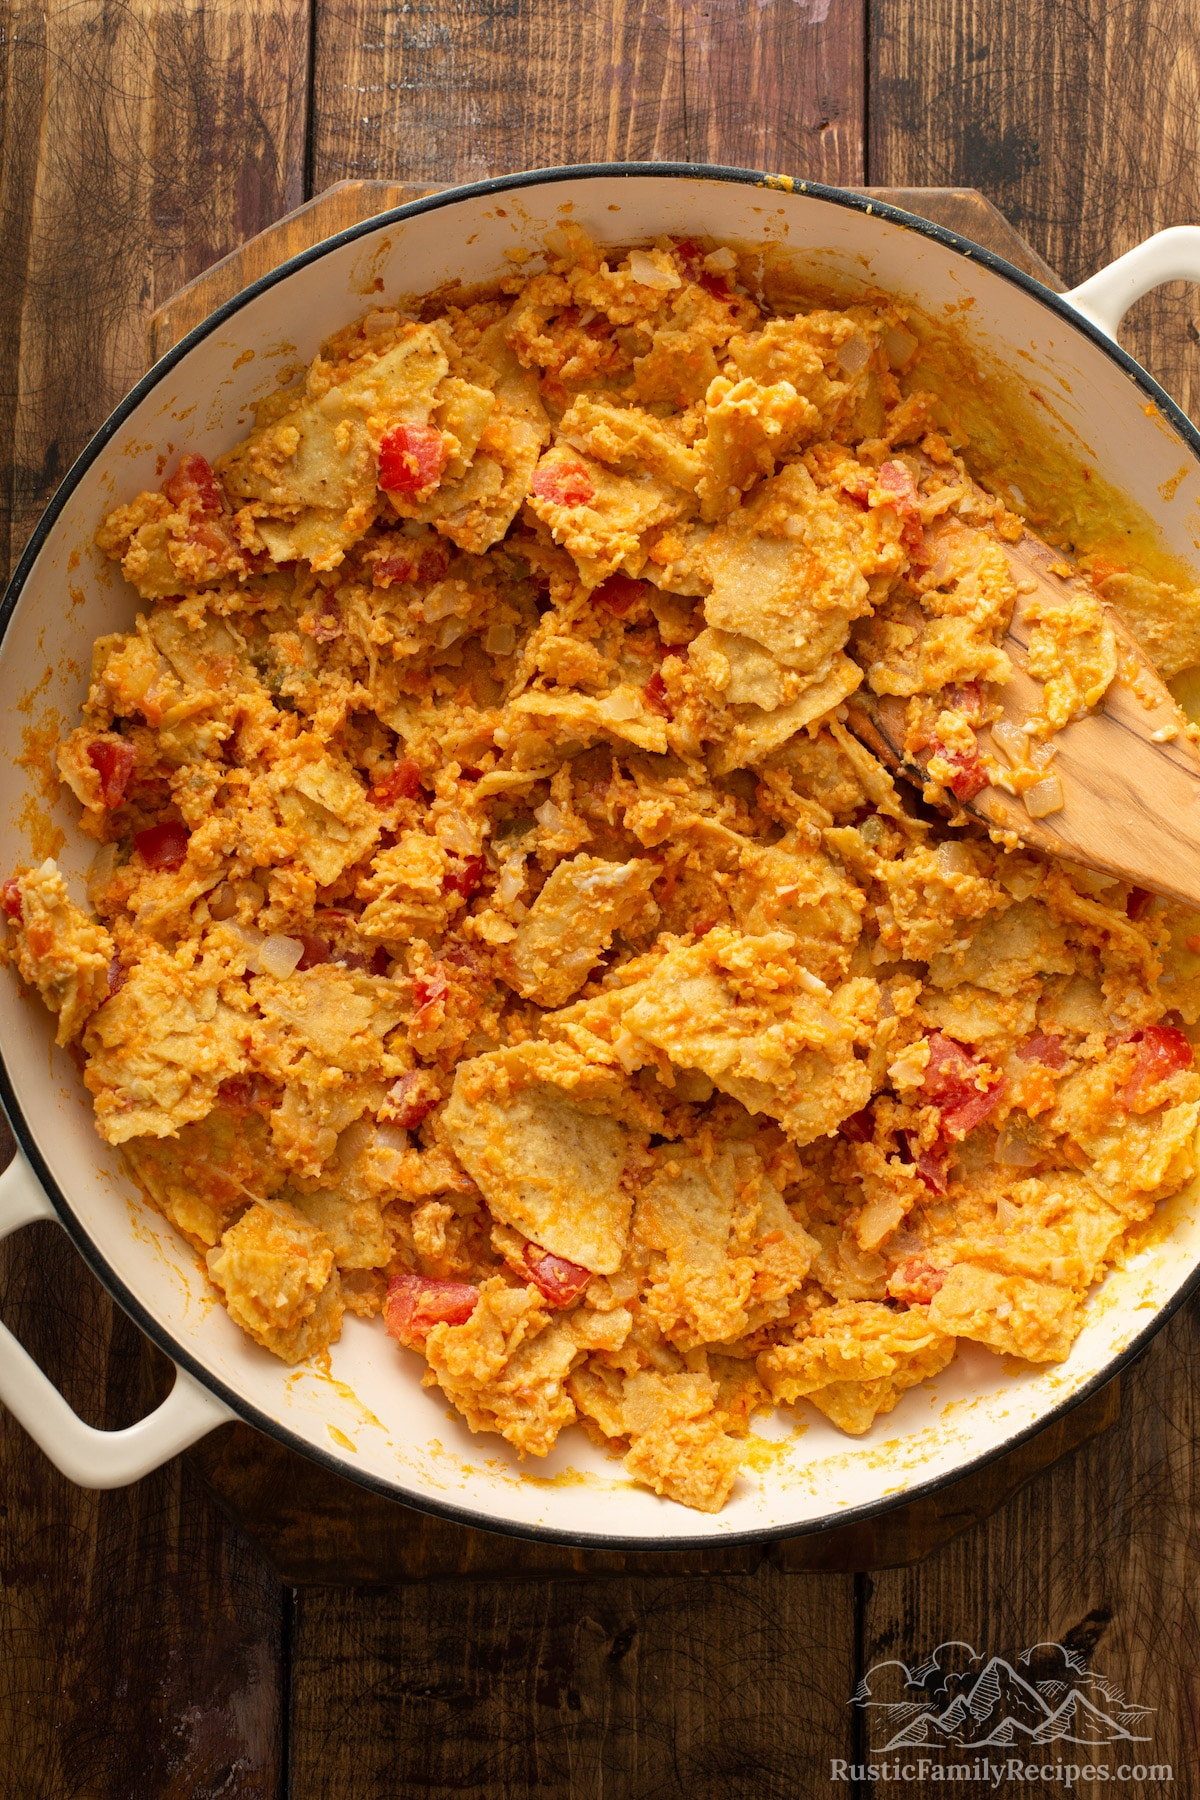 Eggs, sweet potatoes and tortilla chips being scrambled into a pan